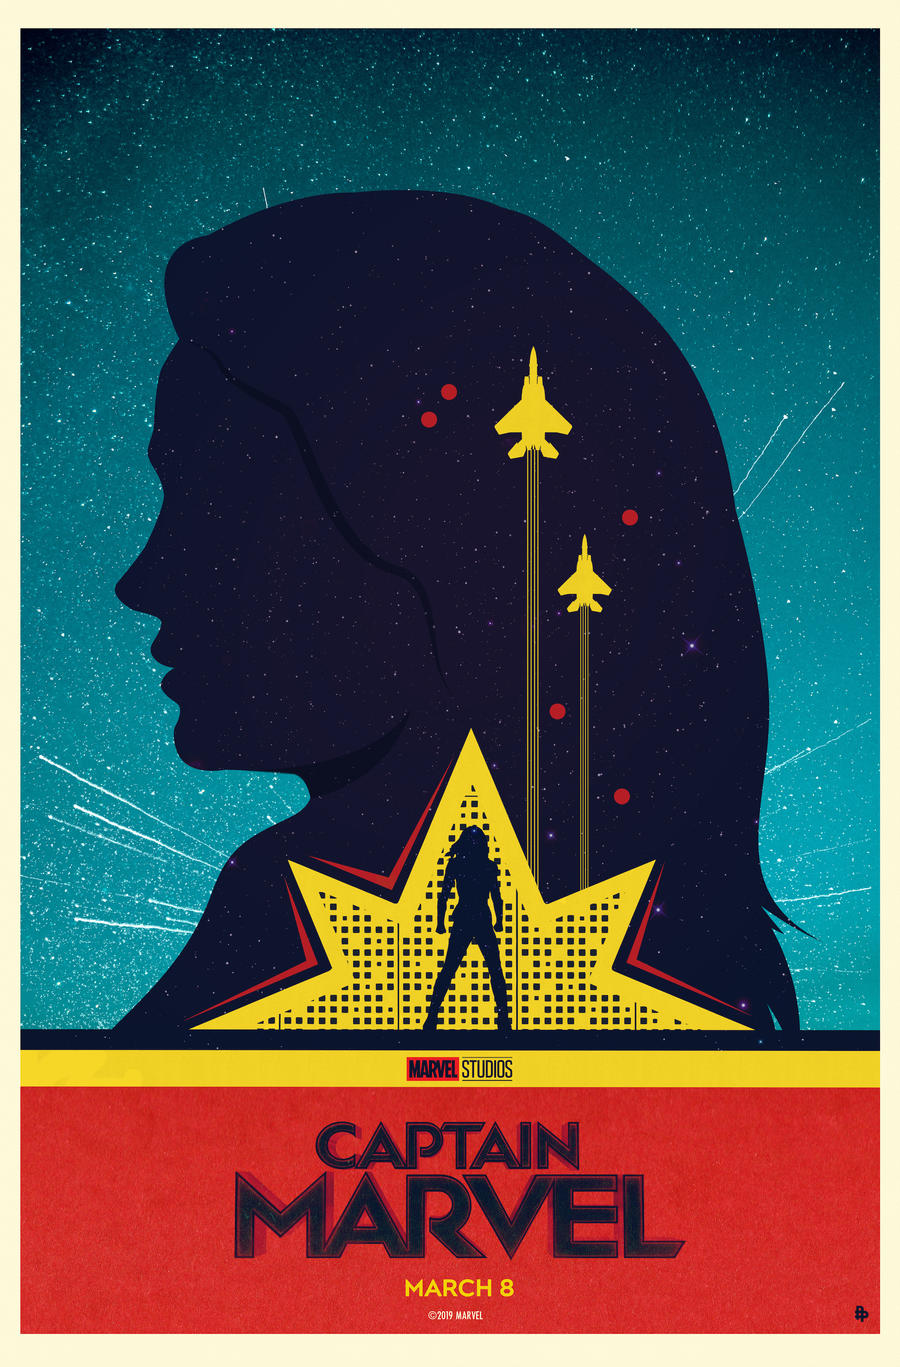 Captain Marvel Poster Art by Matt Needle